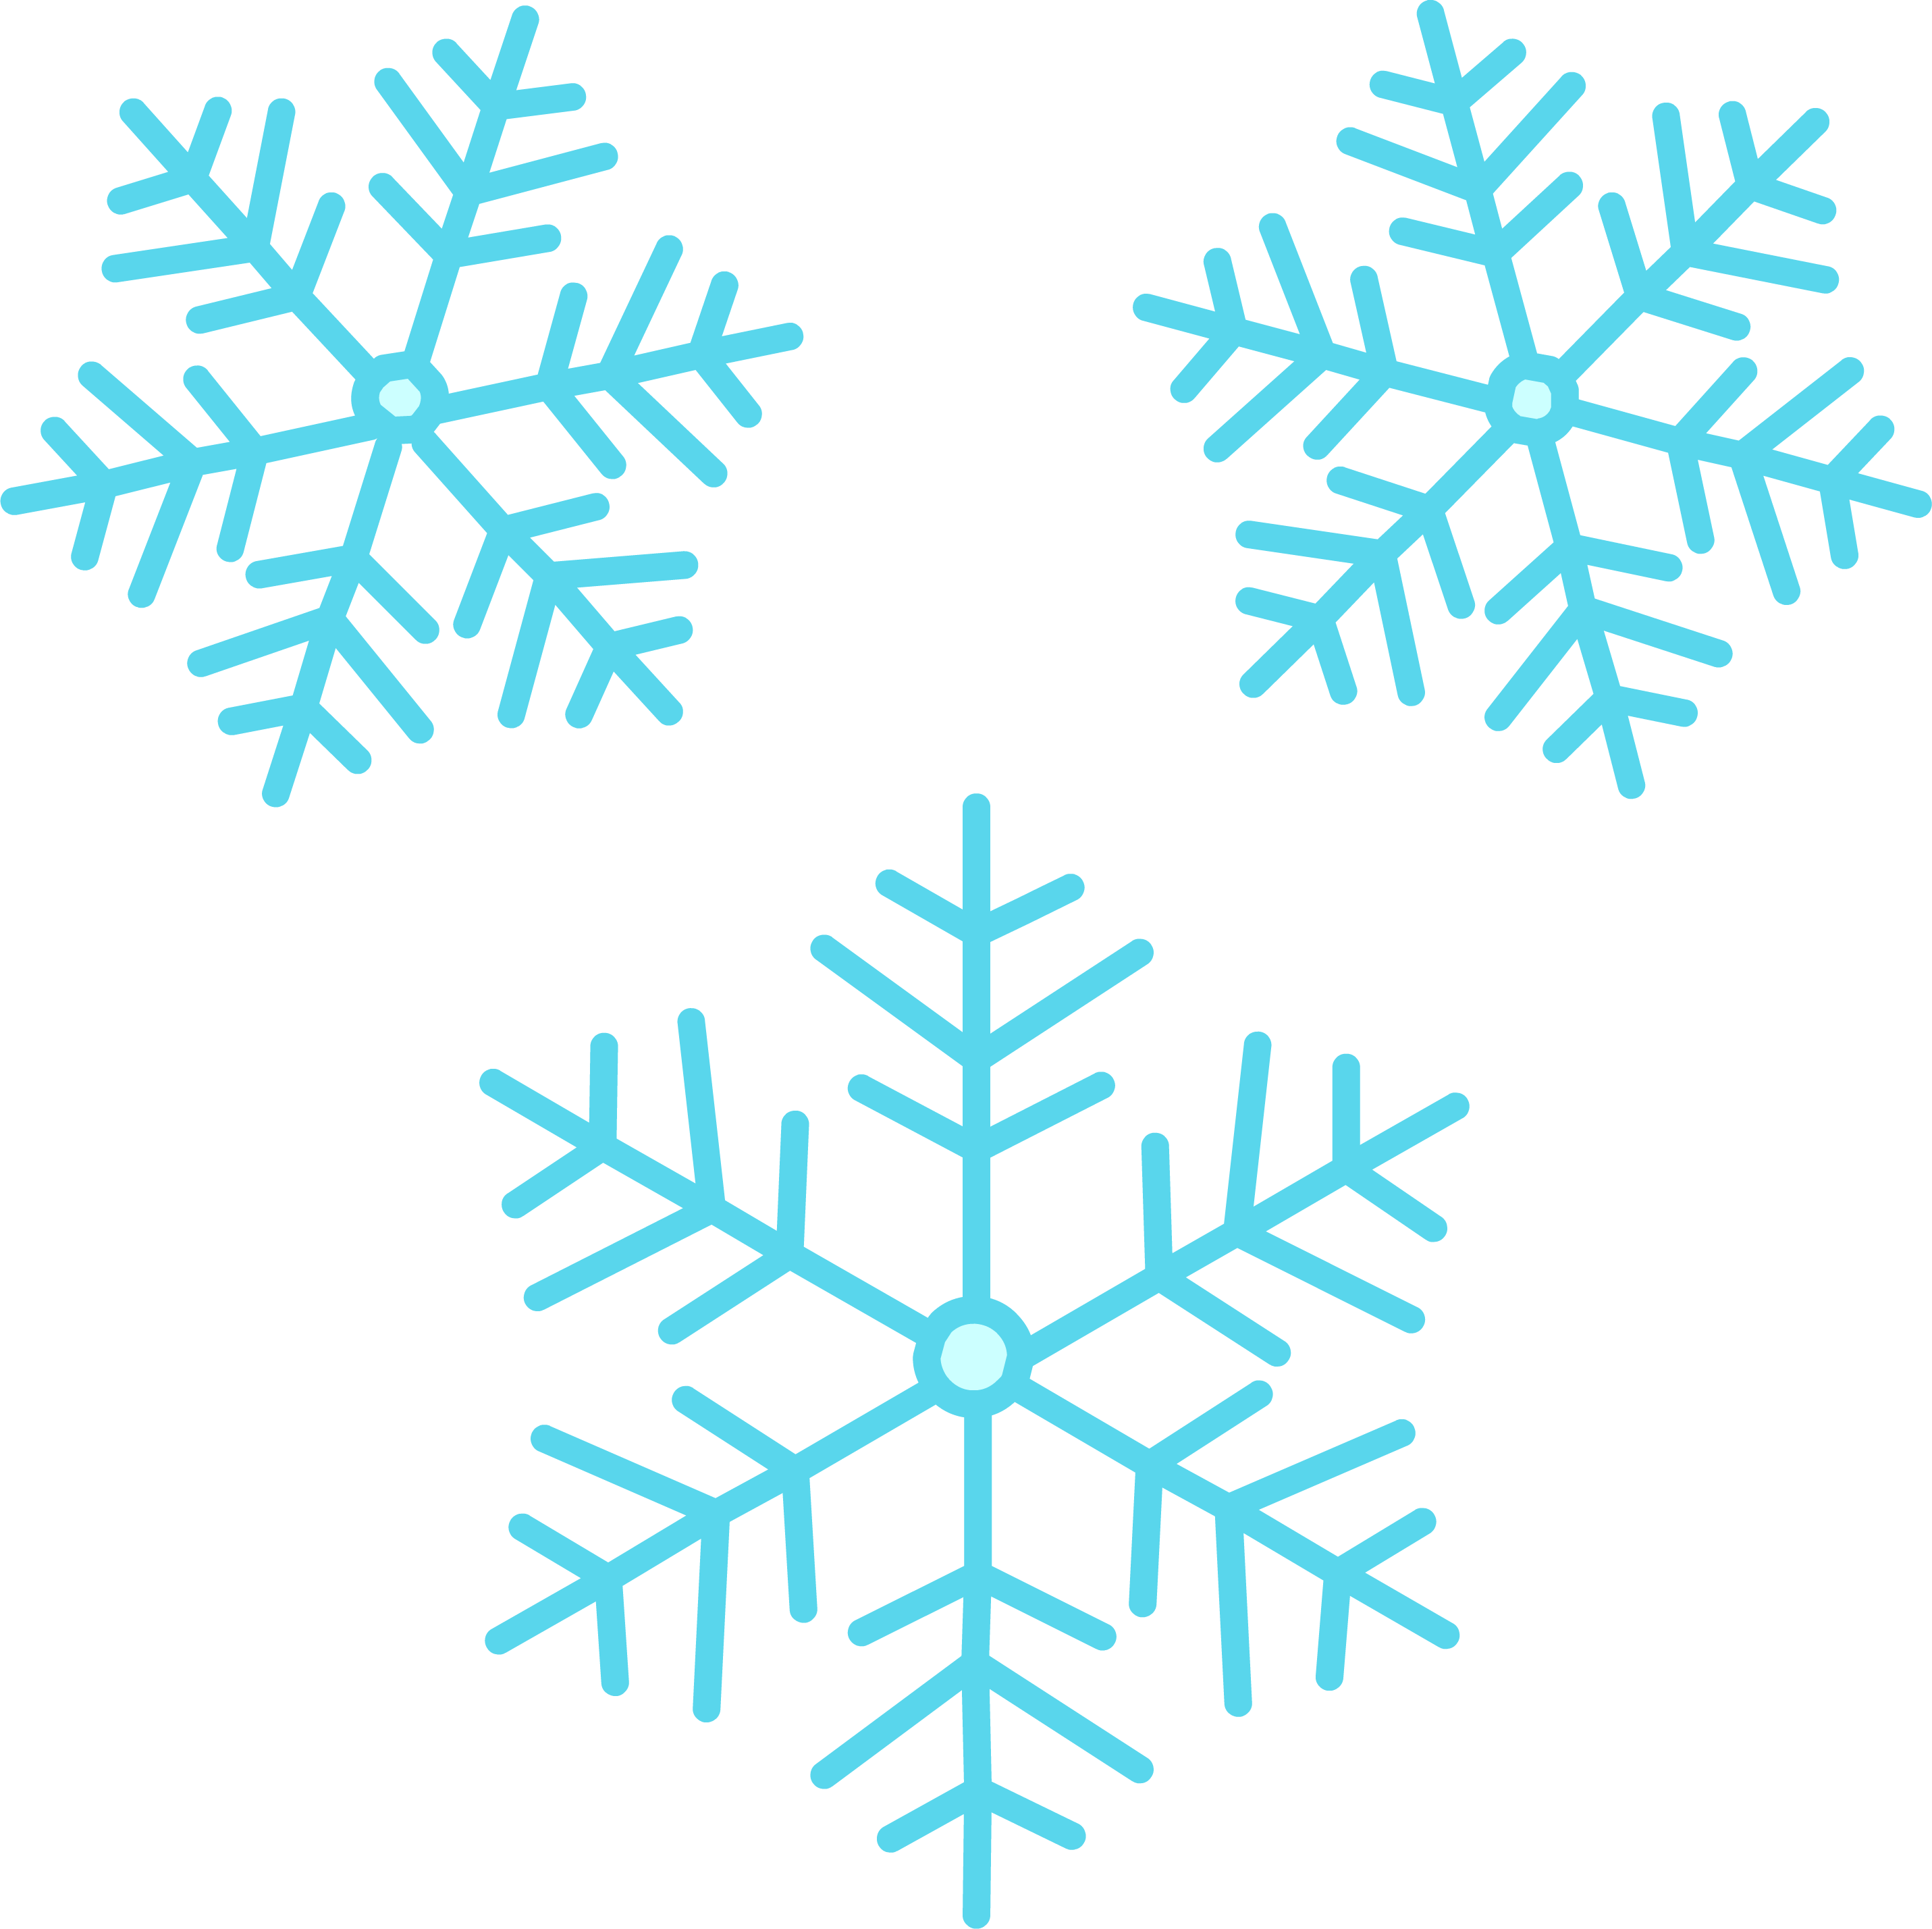 8bit snowflake clipart png free stock Snowflakes PNG images free download, snowflake PNG png free stock